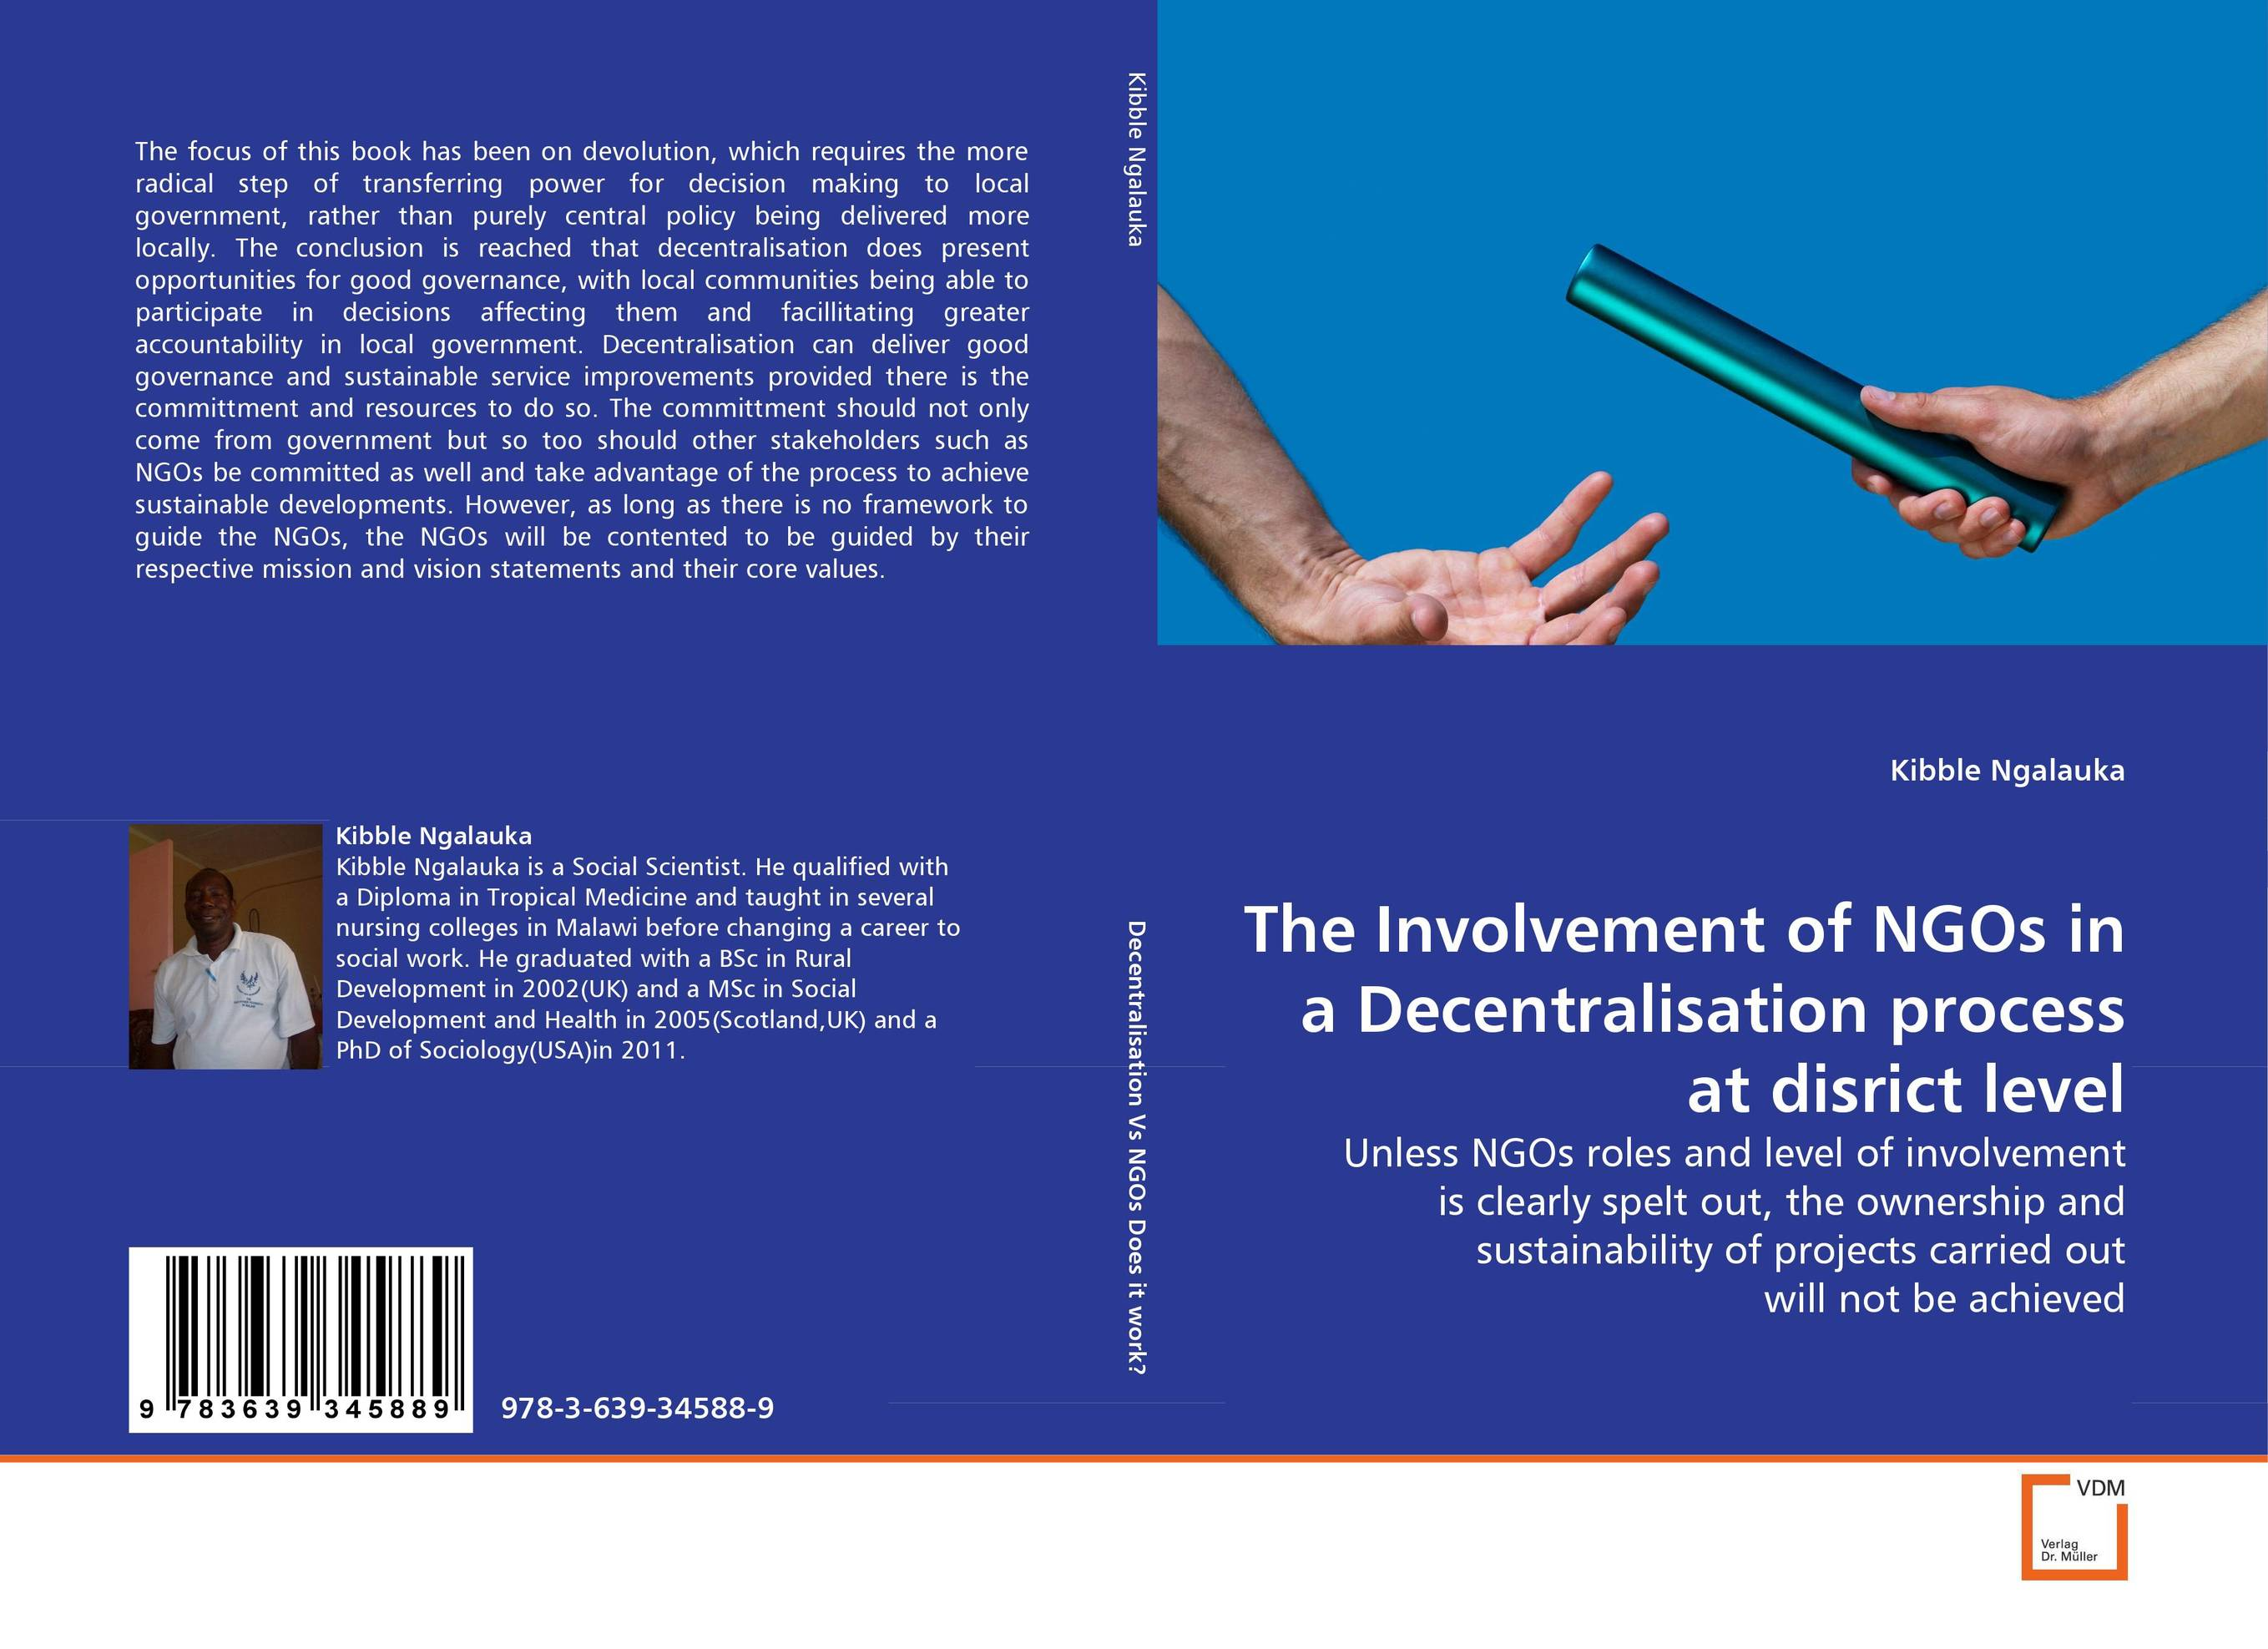 The Involvement of NGOs in a Decentralisation process at disrict level ngos